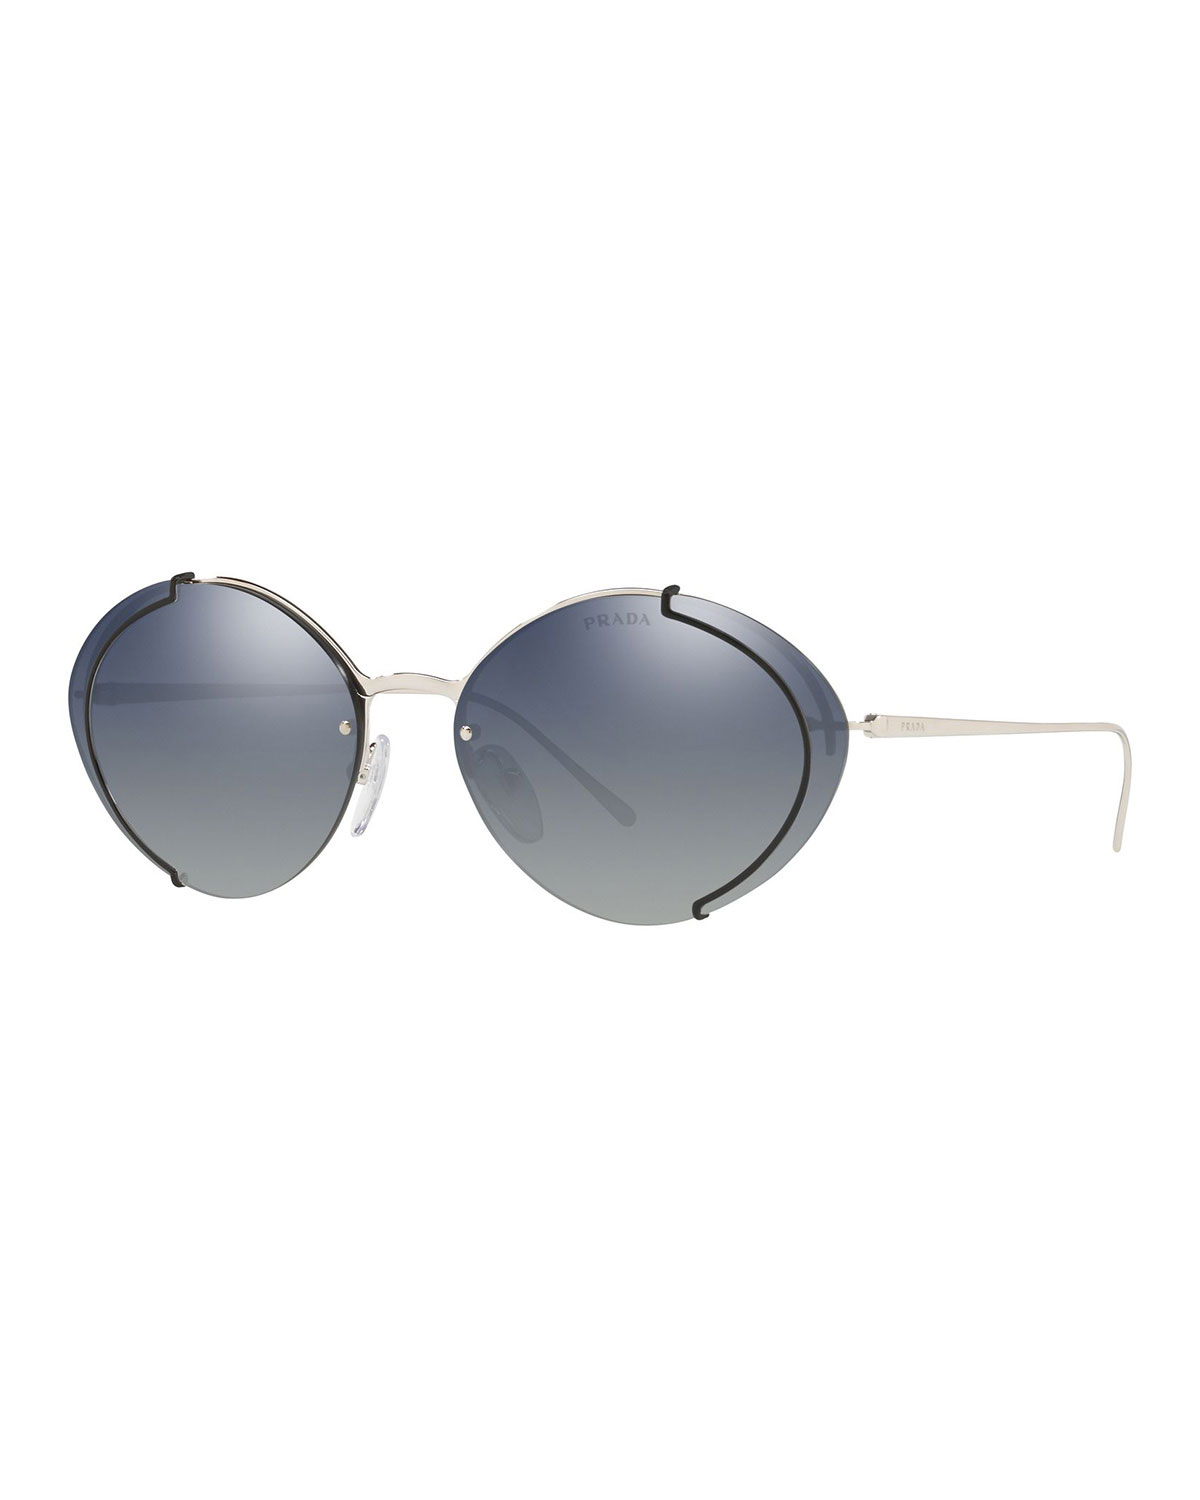 740e96606 Prada Semi-Rimless Mirrored Oval Sunglasses, Silver/Black | ModeSens